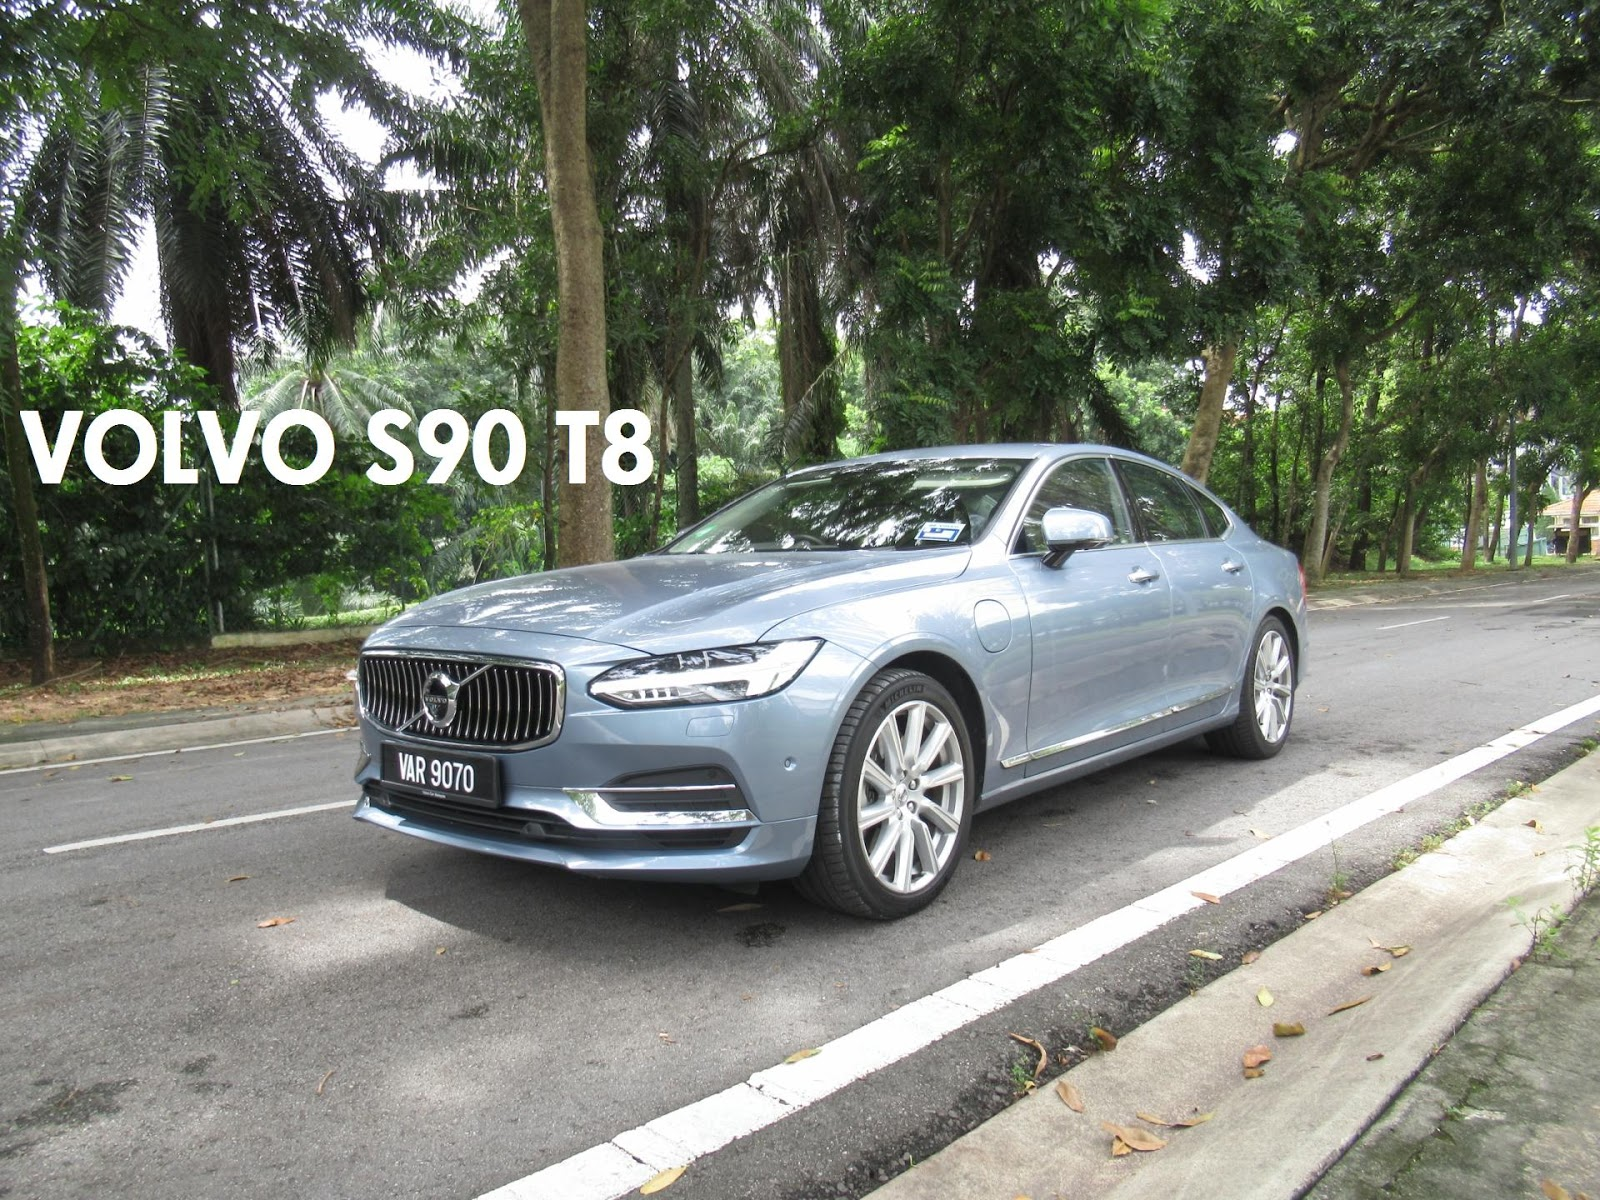 Motoring-Malaysia: VIDEO TEST DRIVE: The 2018 Volvo S90 T8